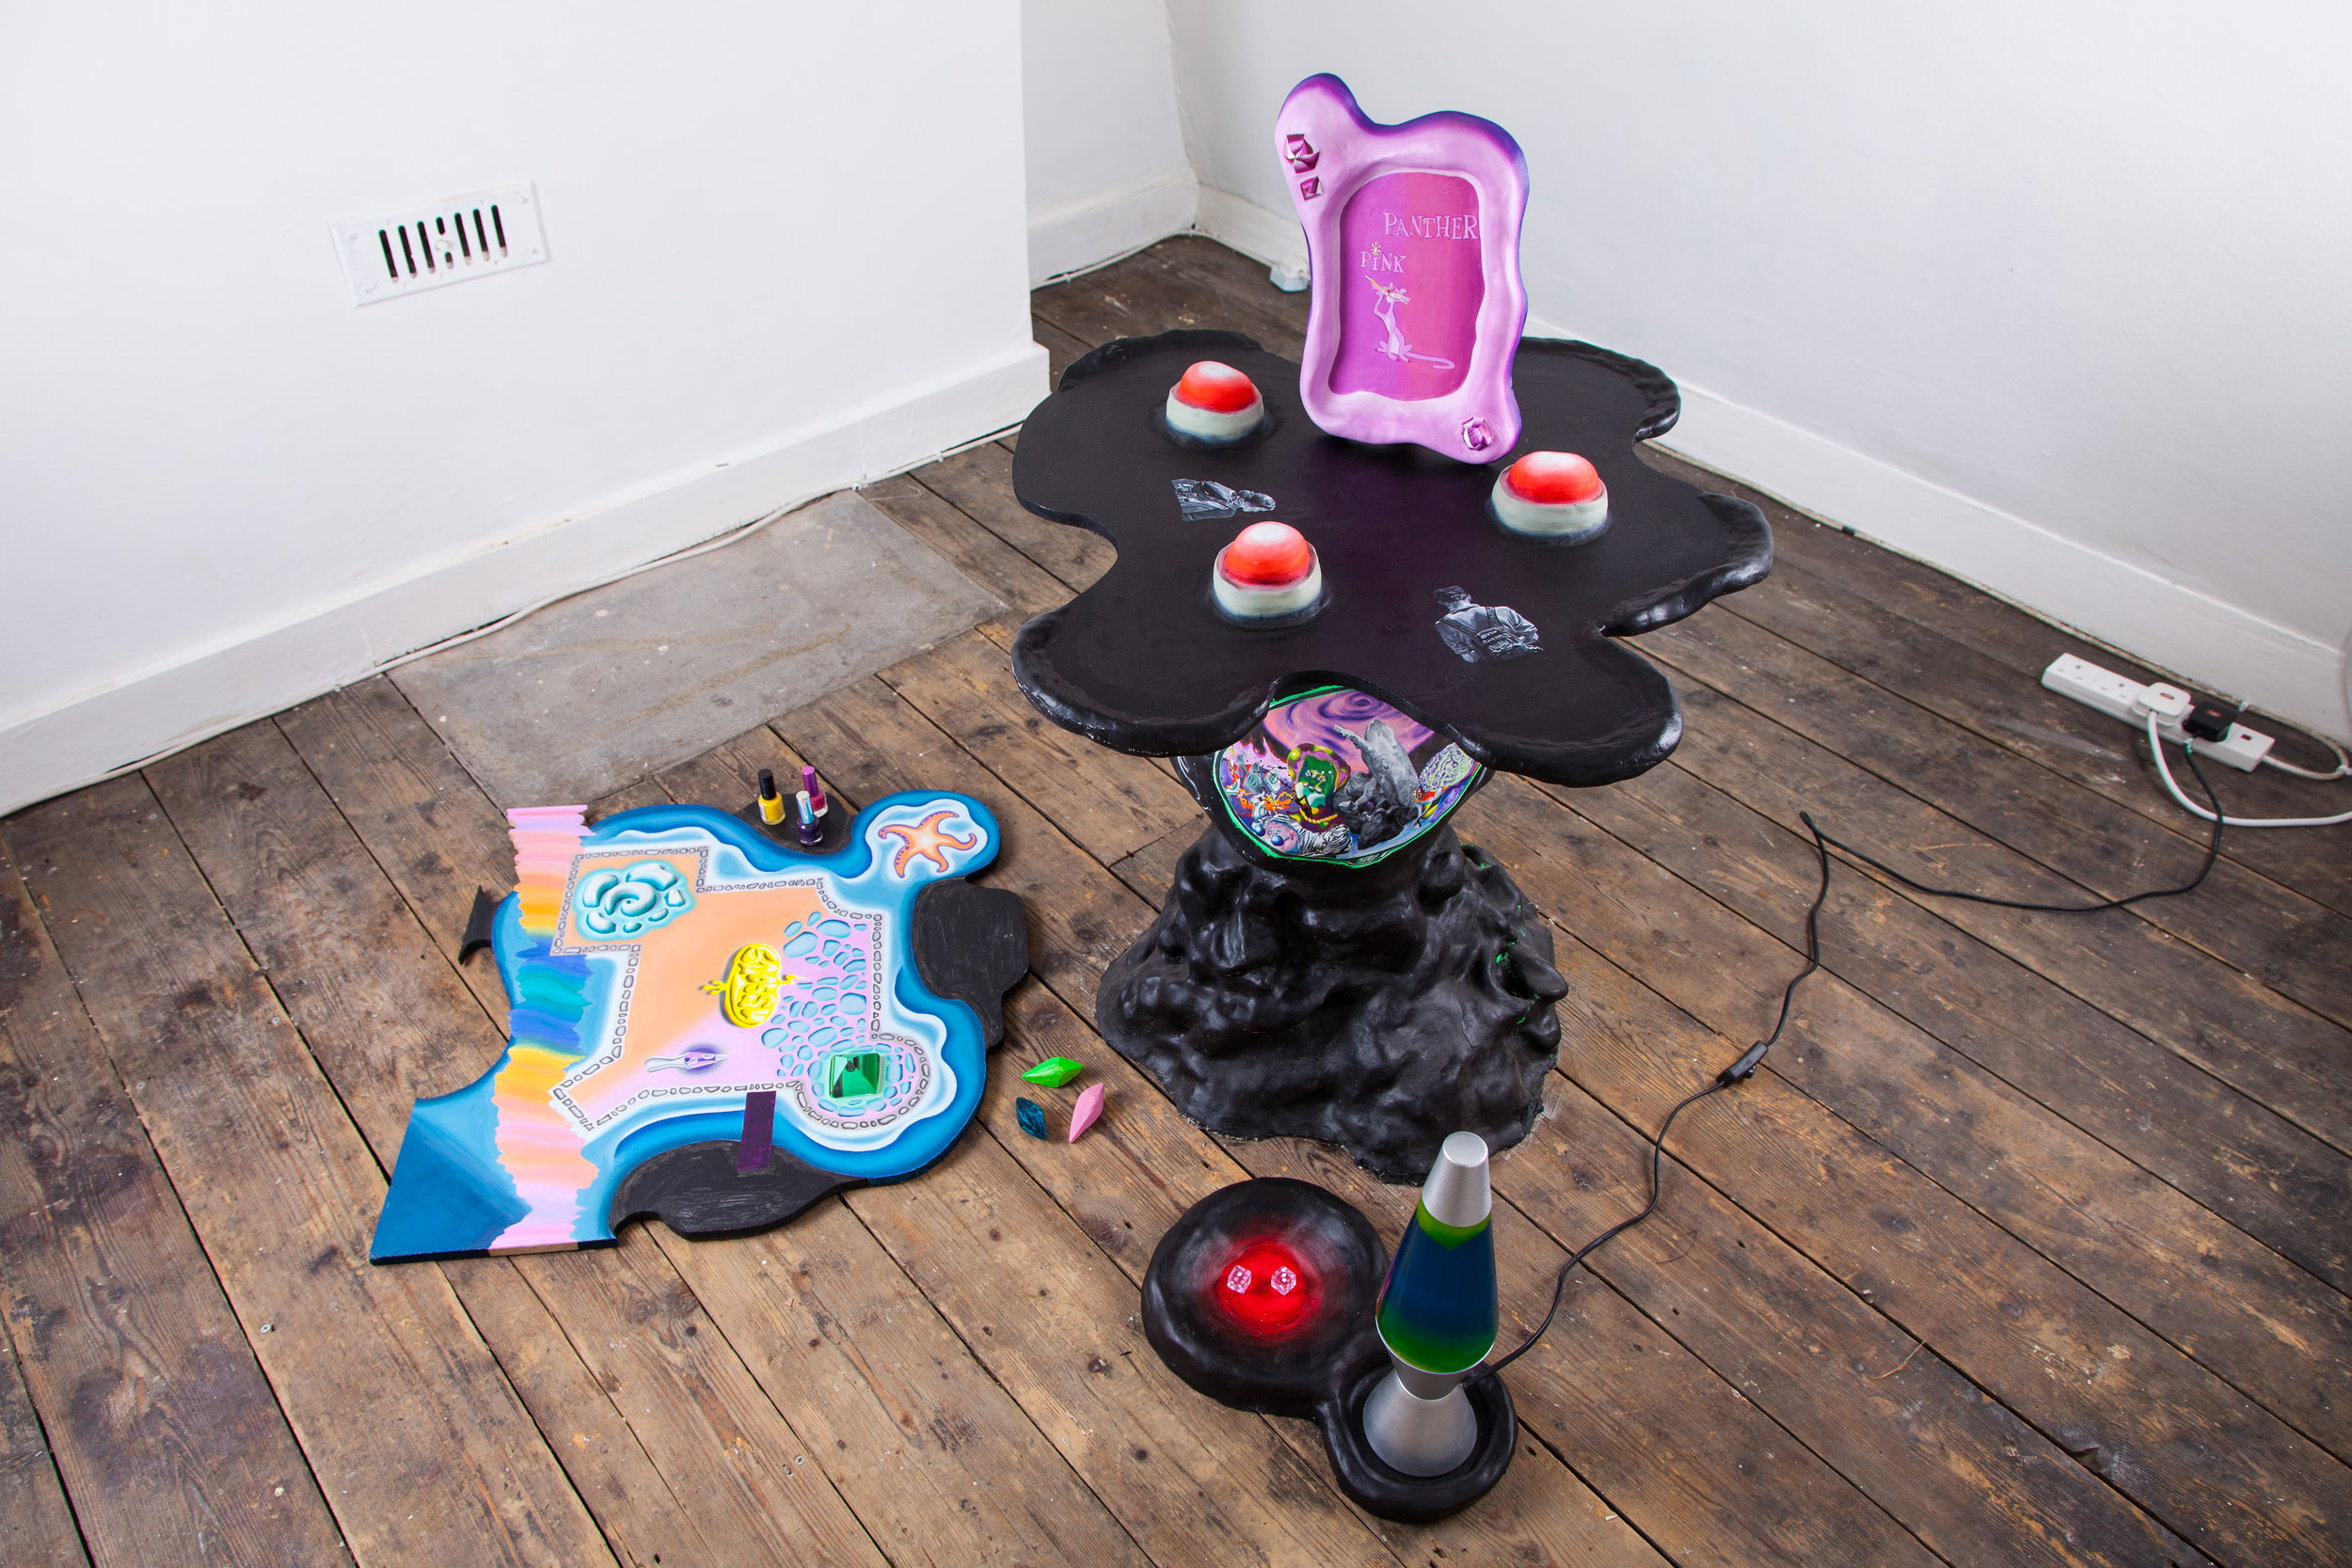 Daniel Burley, Norridge Portal, 2017, Sculpture, Panther Pink frame, lava lamp, dices and wooden board, variable dimensions. Photograph by Ekphrasis © dateagleart 2018.